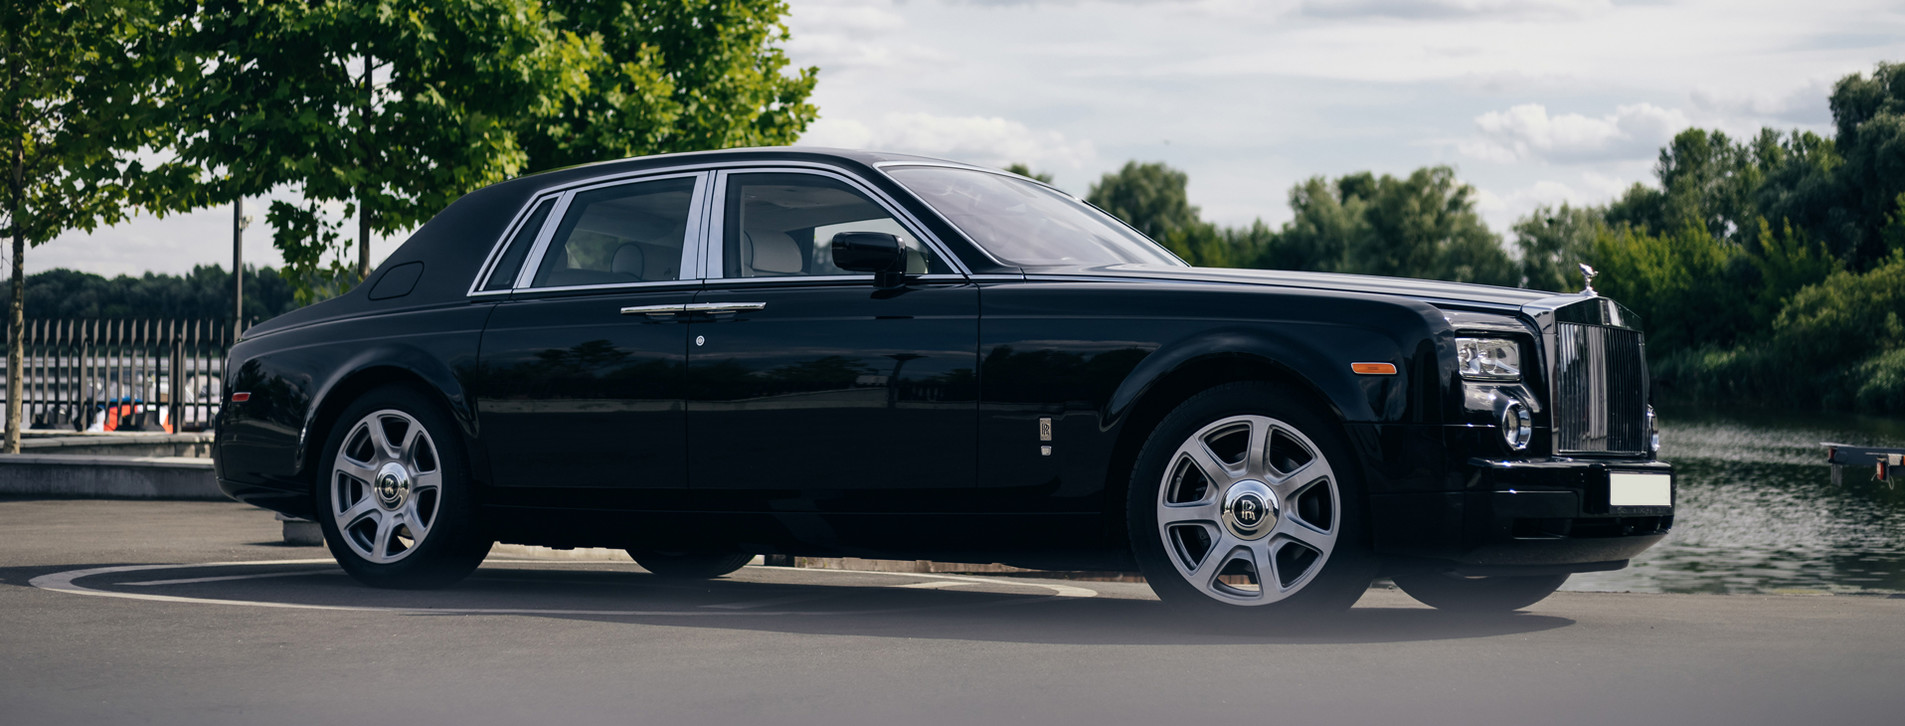 Фото - Rolls-Royce Phantom с водителем